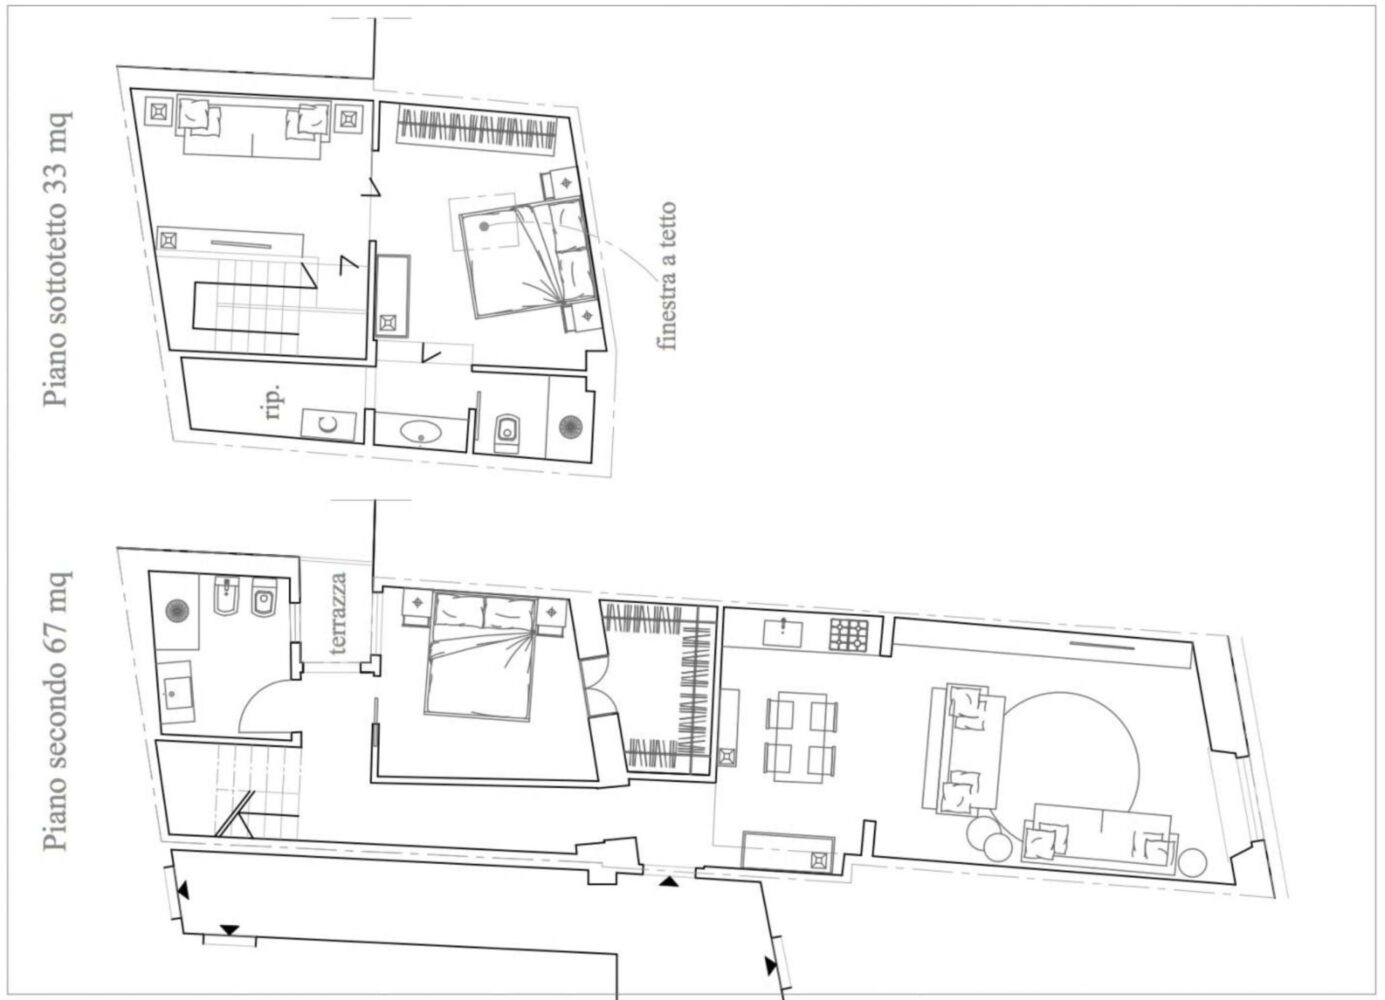 Floorplan first and second level